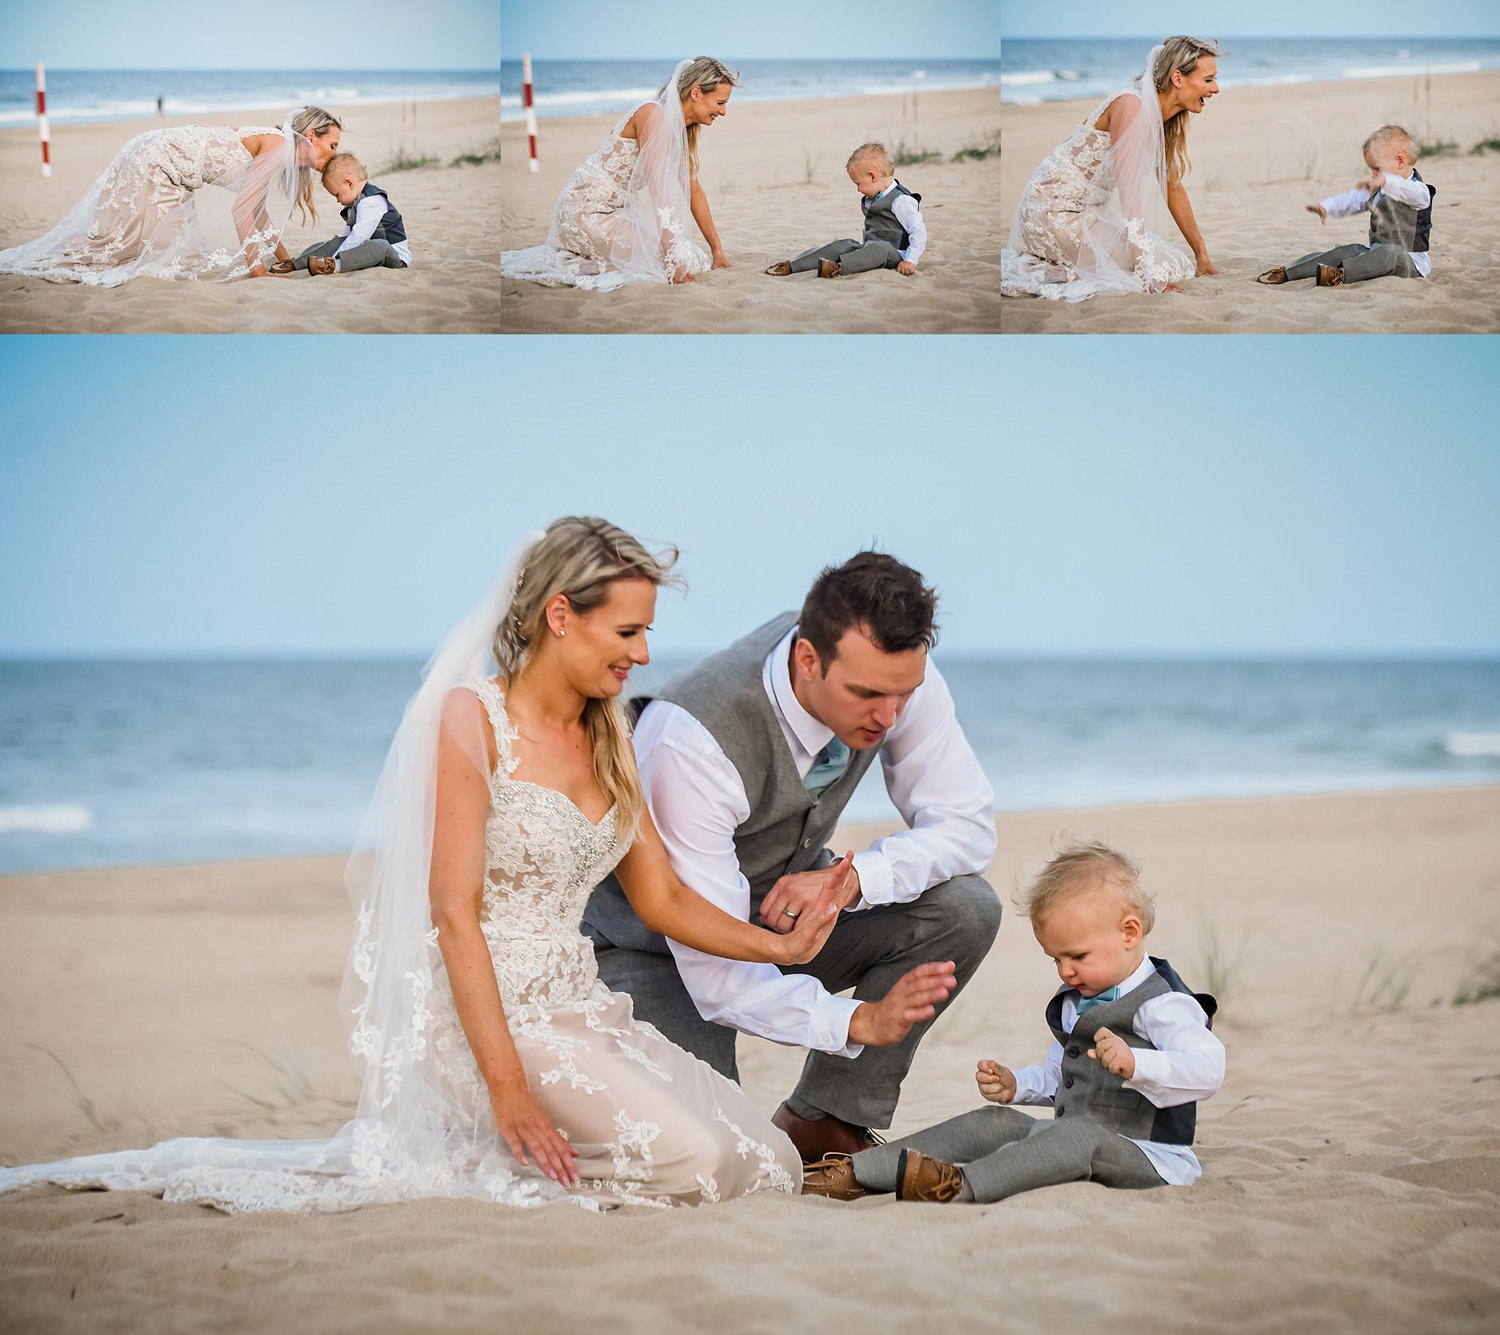 best-beach-wedding-photography-sandbridge-beach-va-beach-melissa-bliss-photography.jpg